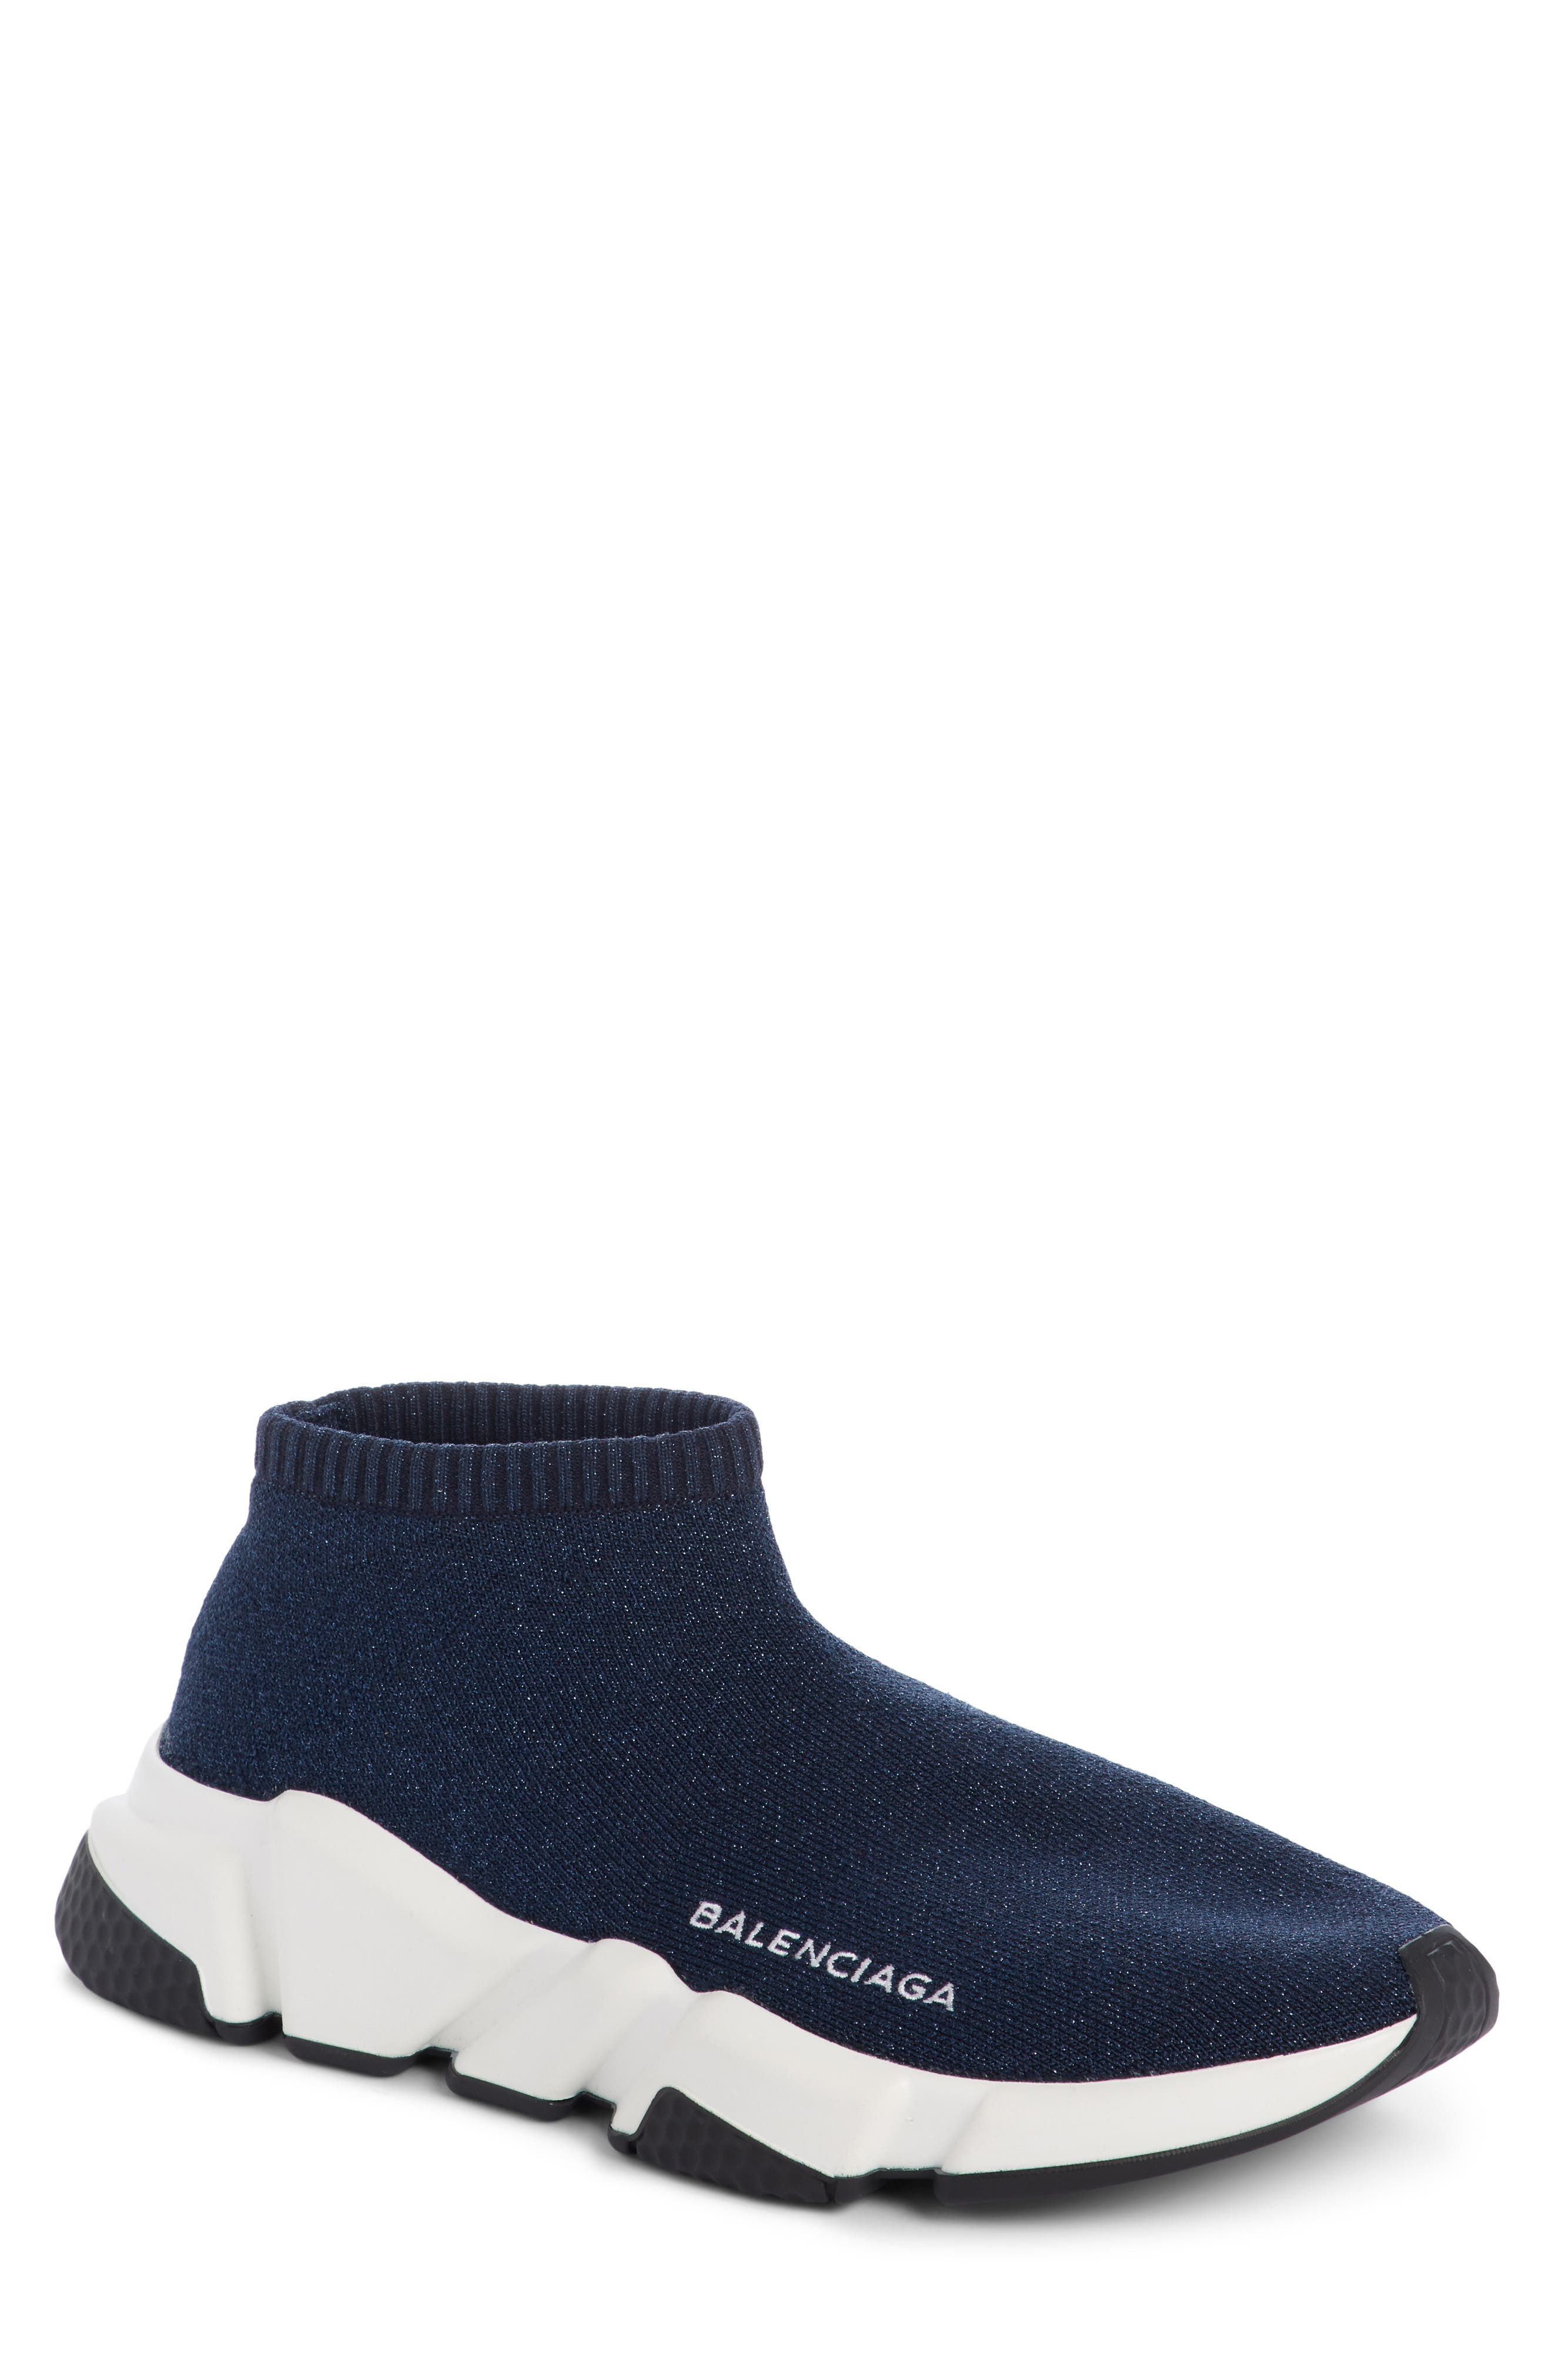 Low Speed Sneaker,                             Main thumbnail 1, color,                             Midnight Blue